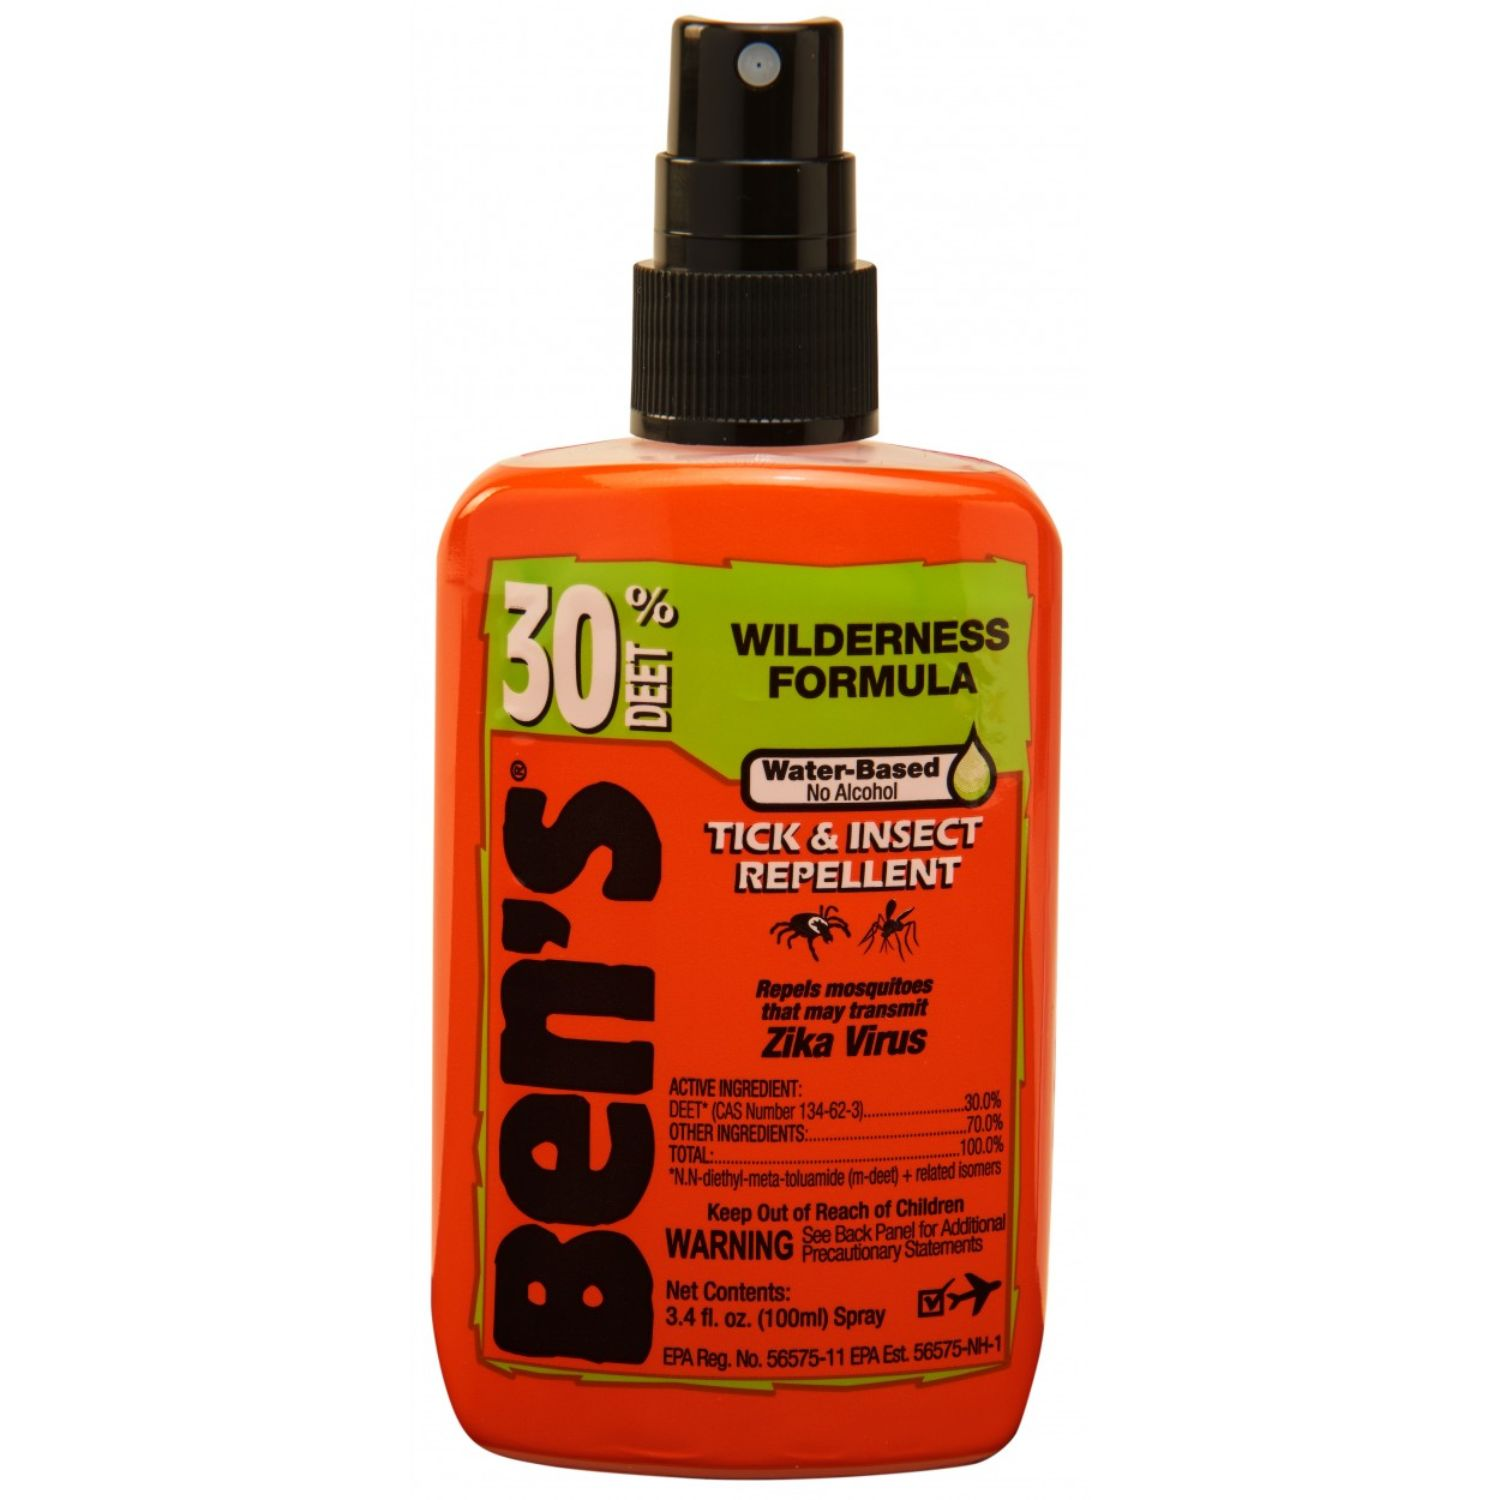 Bens 30 Tick and Insect Repellent Pump 3.4 oz